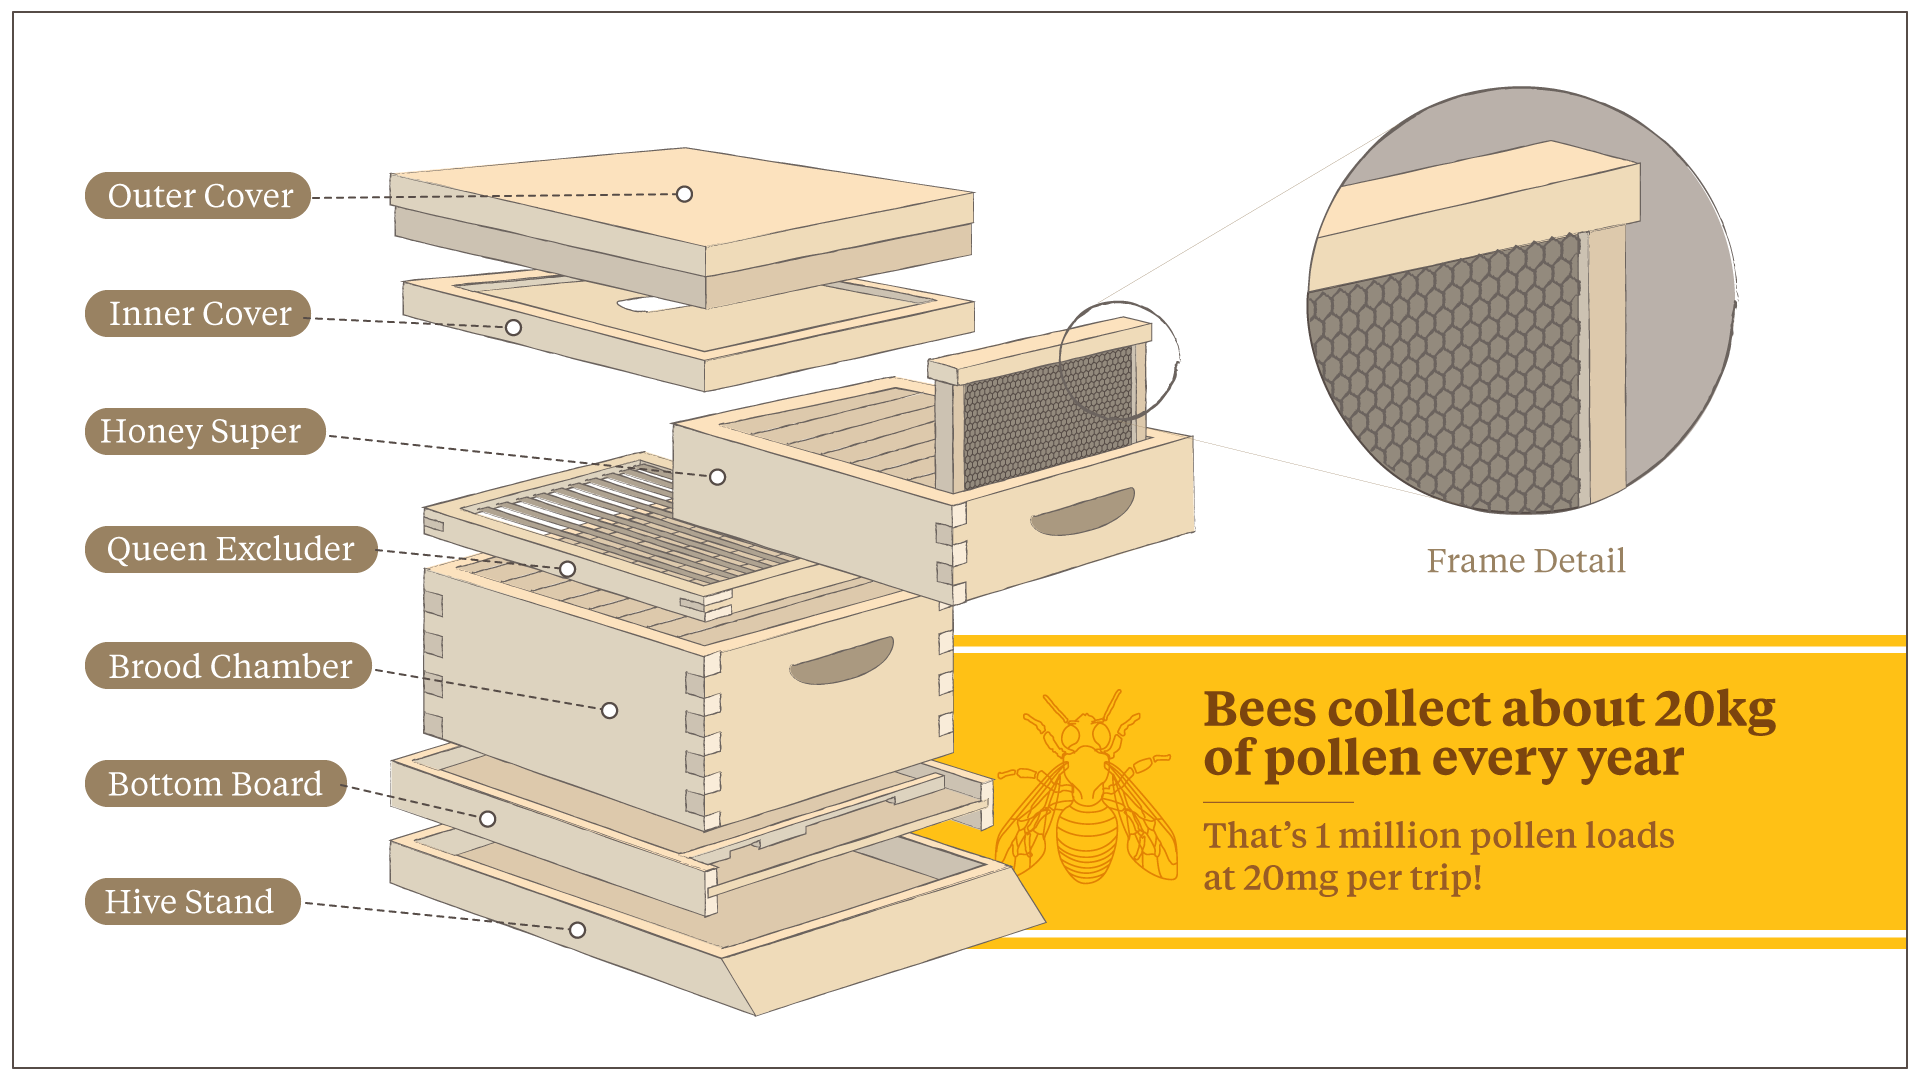 As the Country's Bee Population Rapidly Shrinks, Interest in BU Beekeeping Is Growing